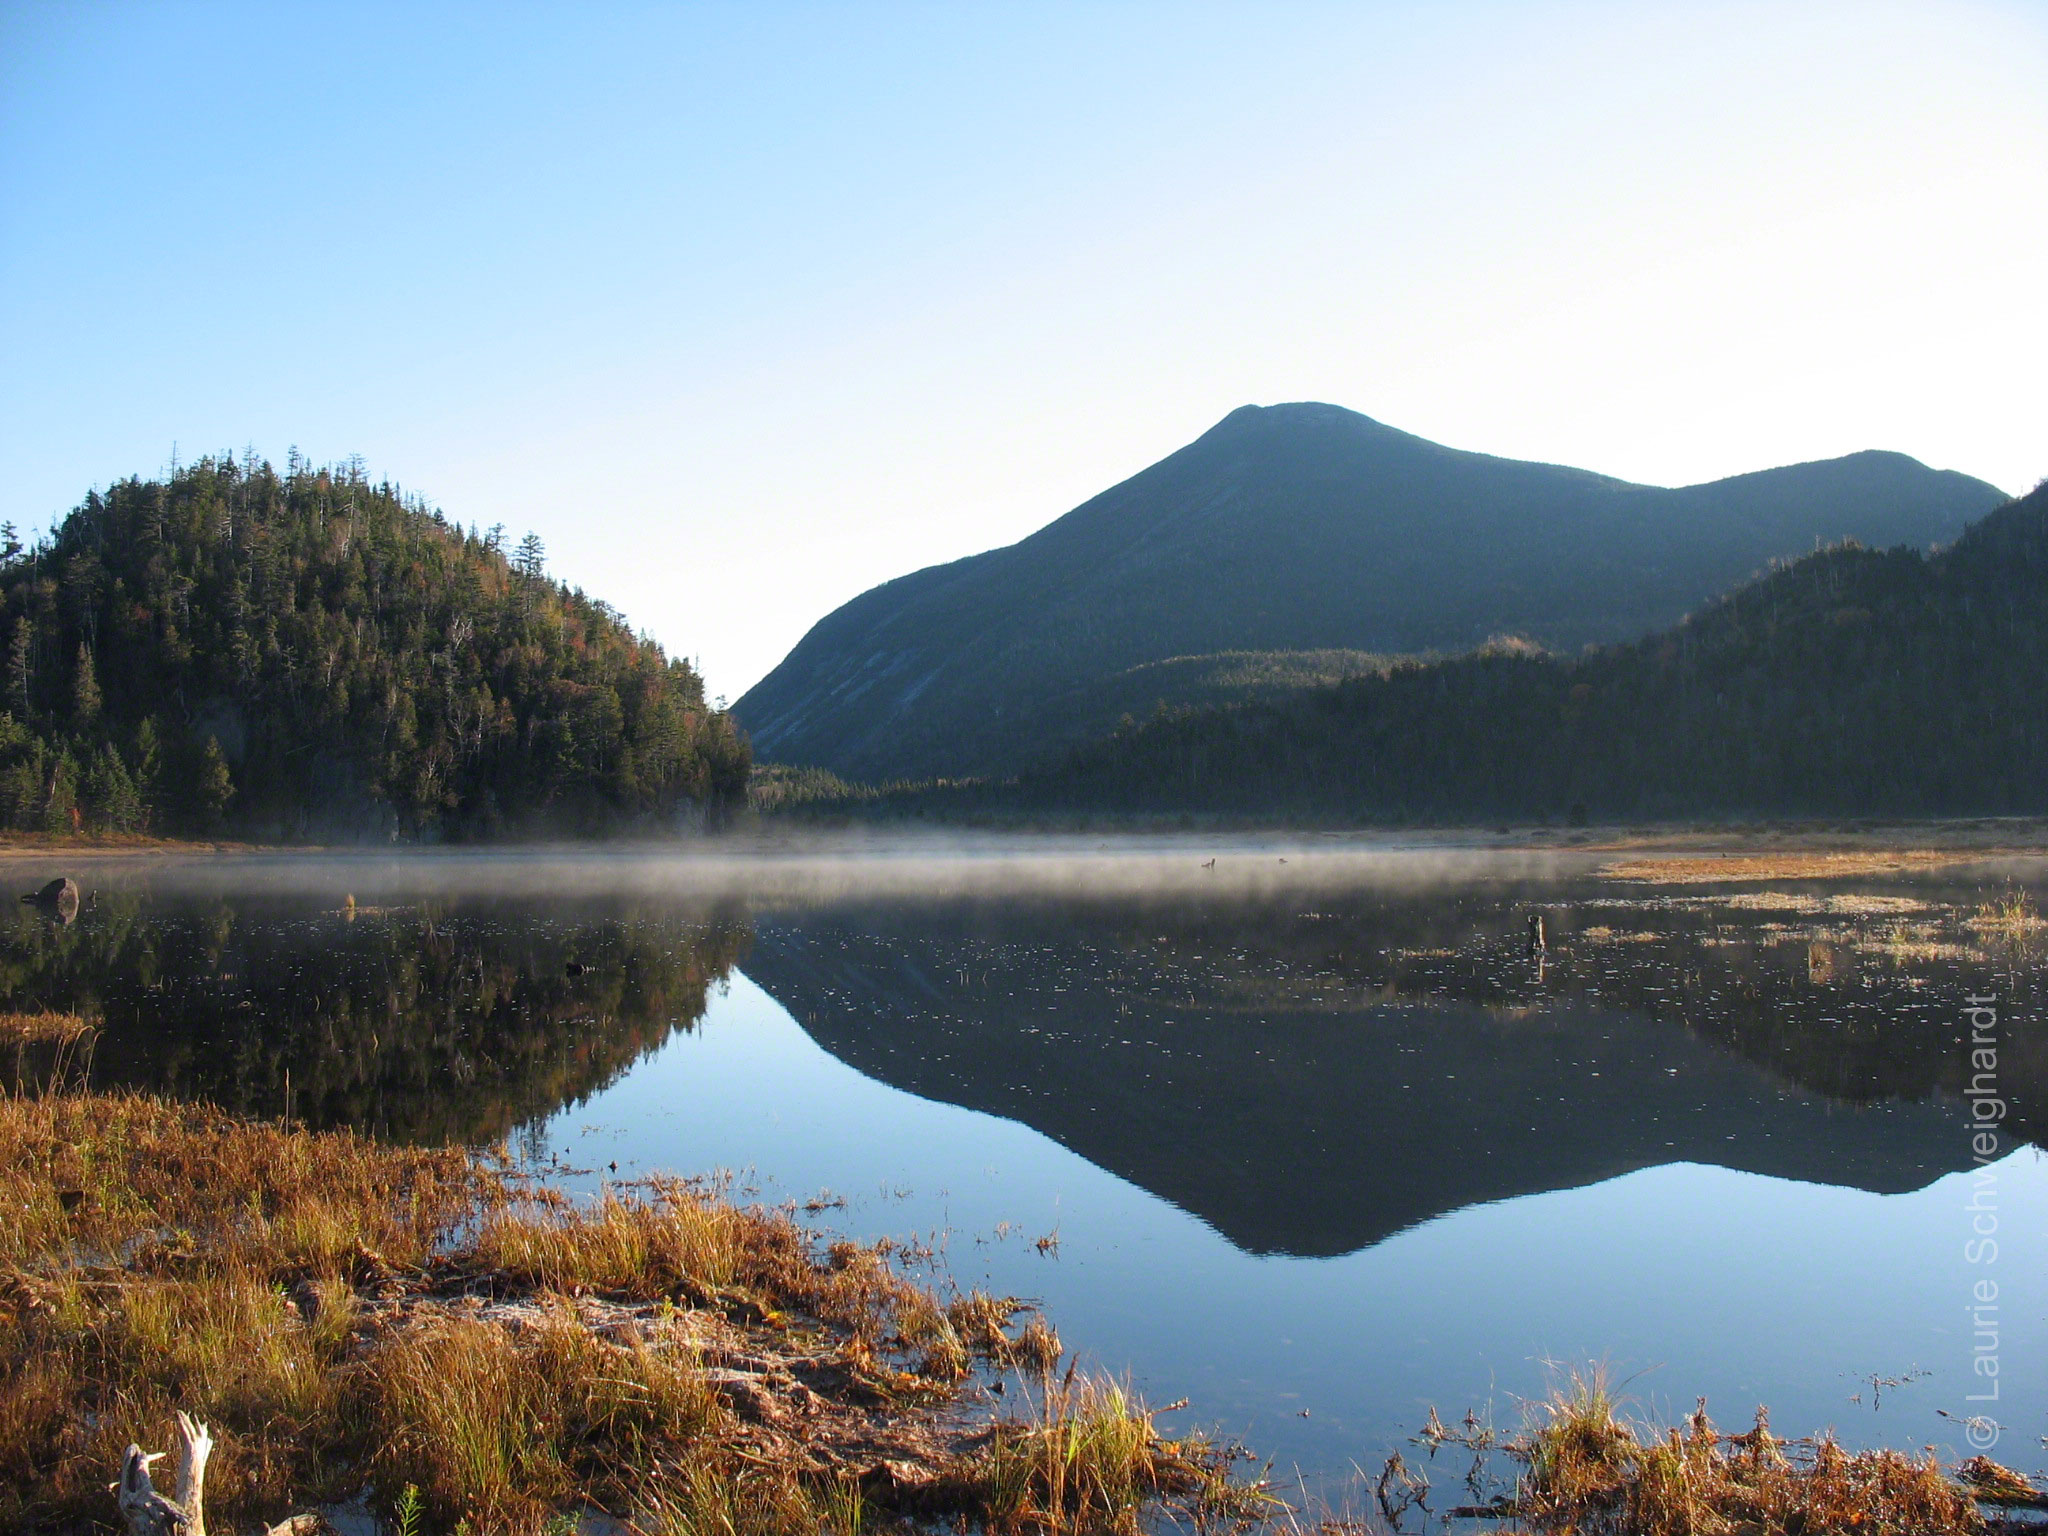 The view of Mount Colden from the Flowed Lands